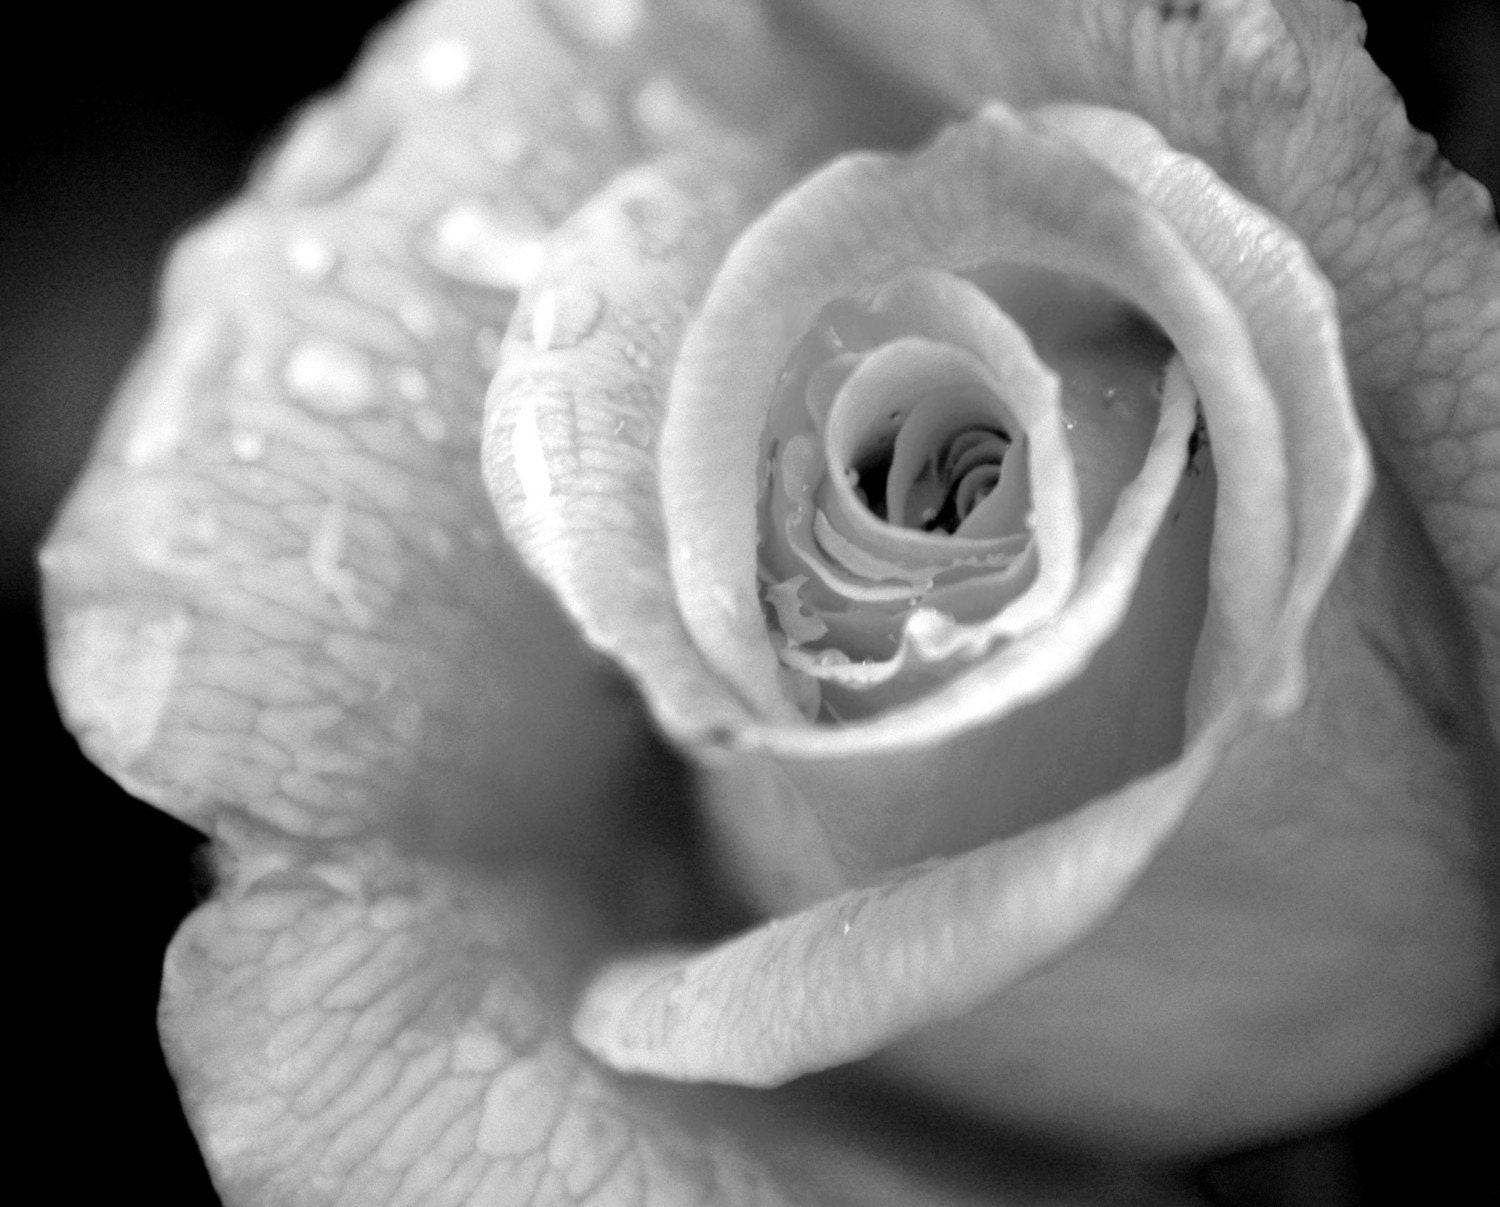 Black and White Rain Drop Rose art photograph